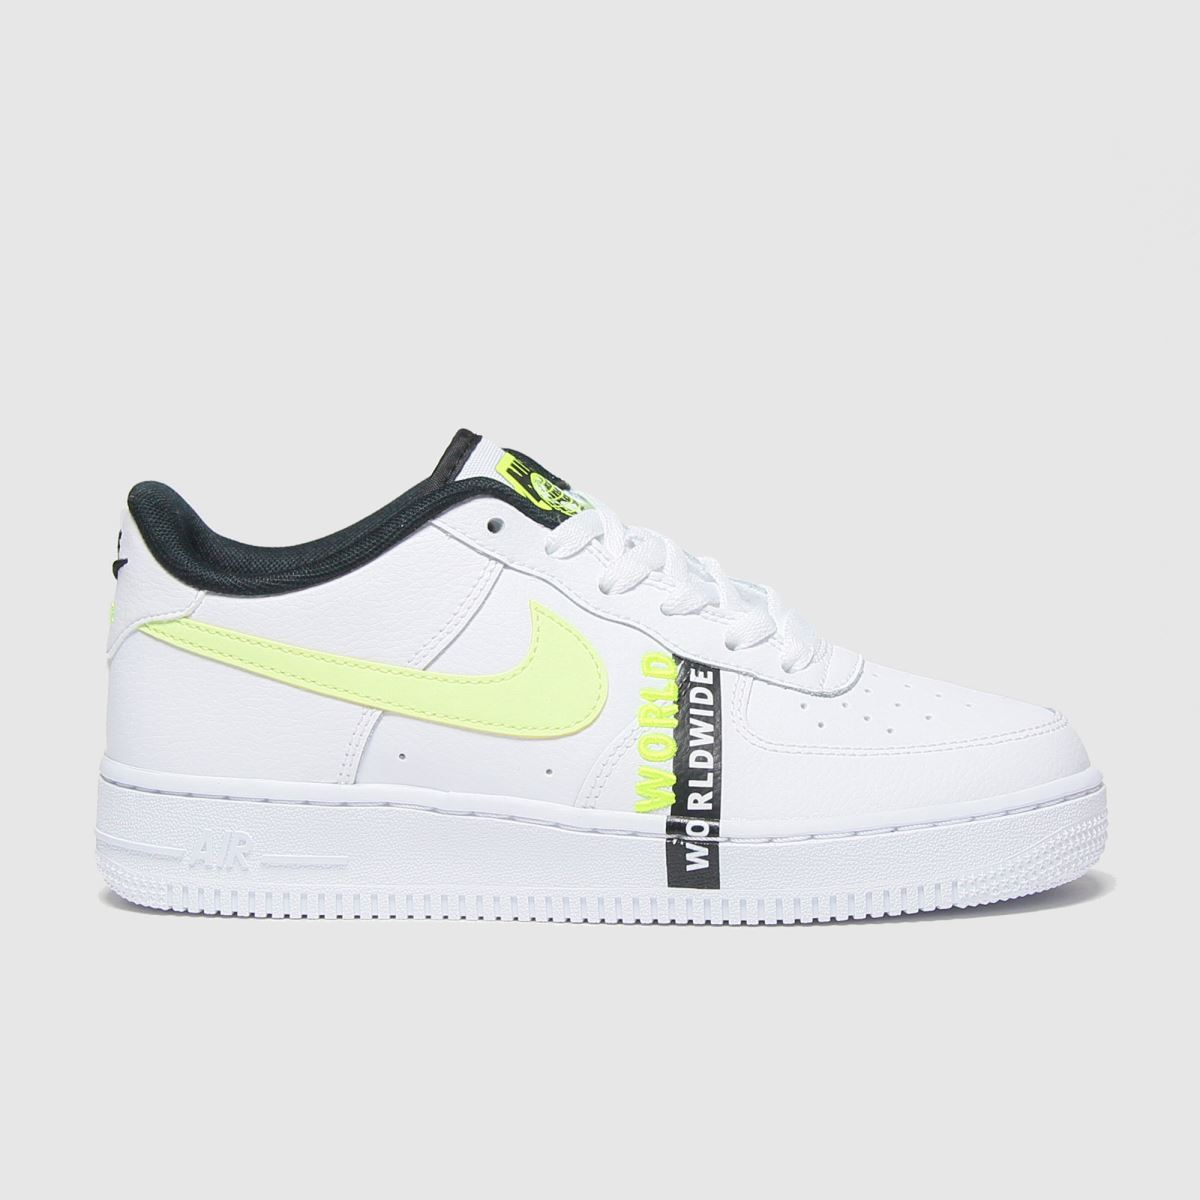 Kids Unisex white & green nike air force 1 lv8 1 trainers